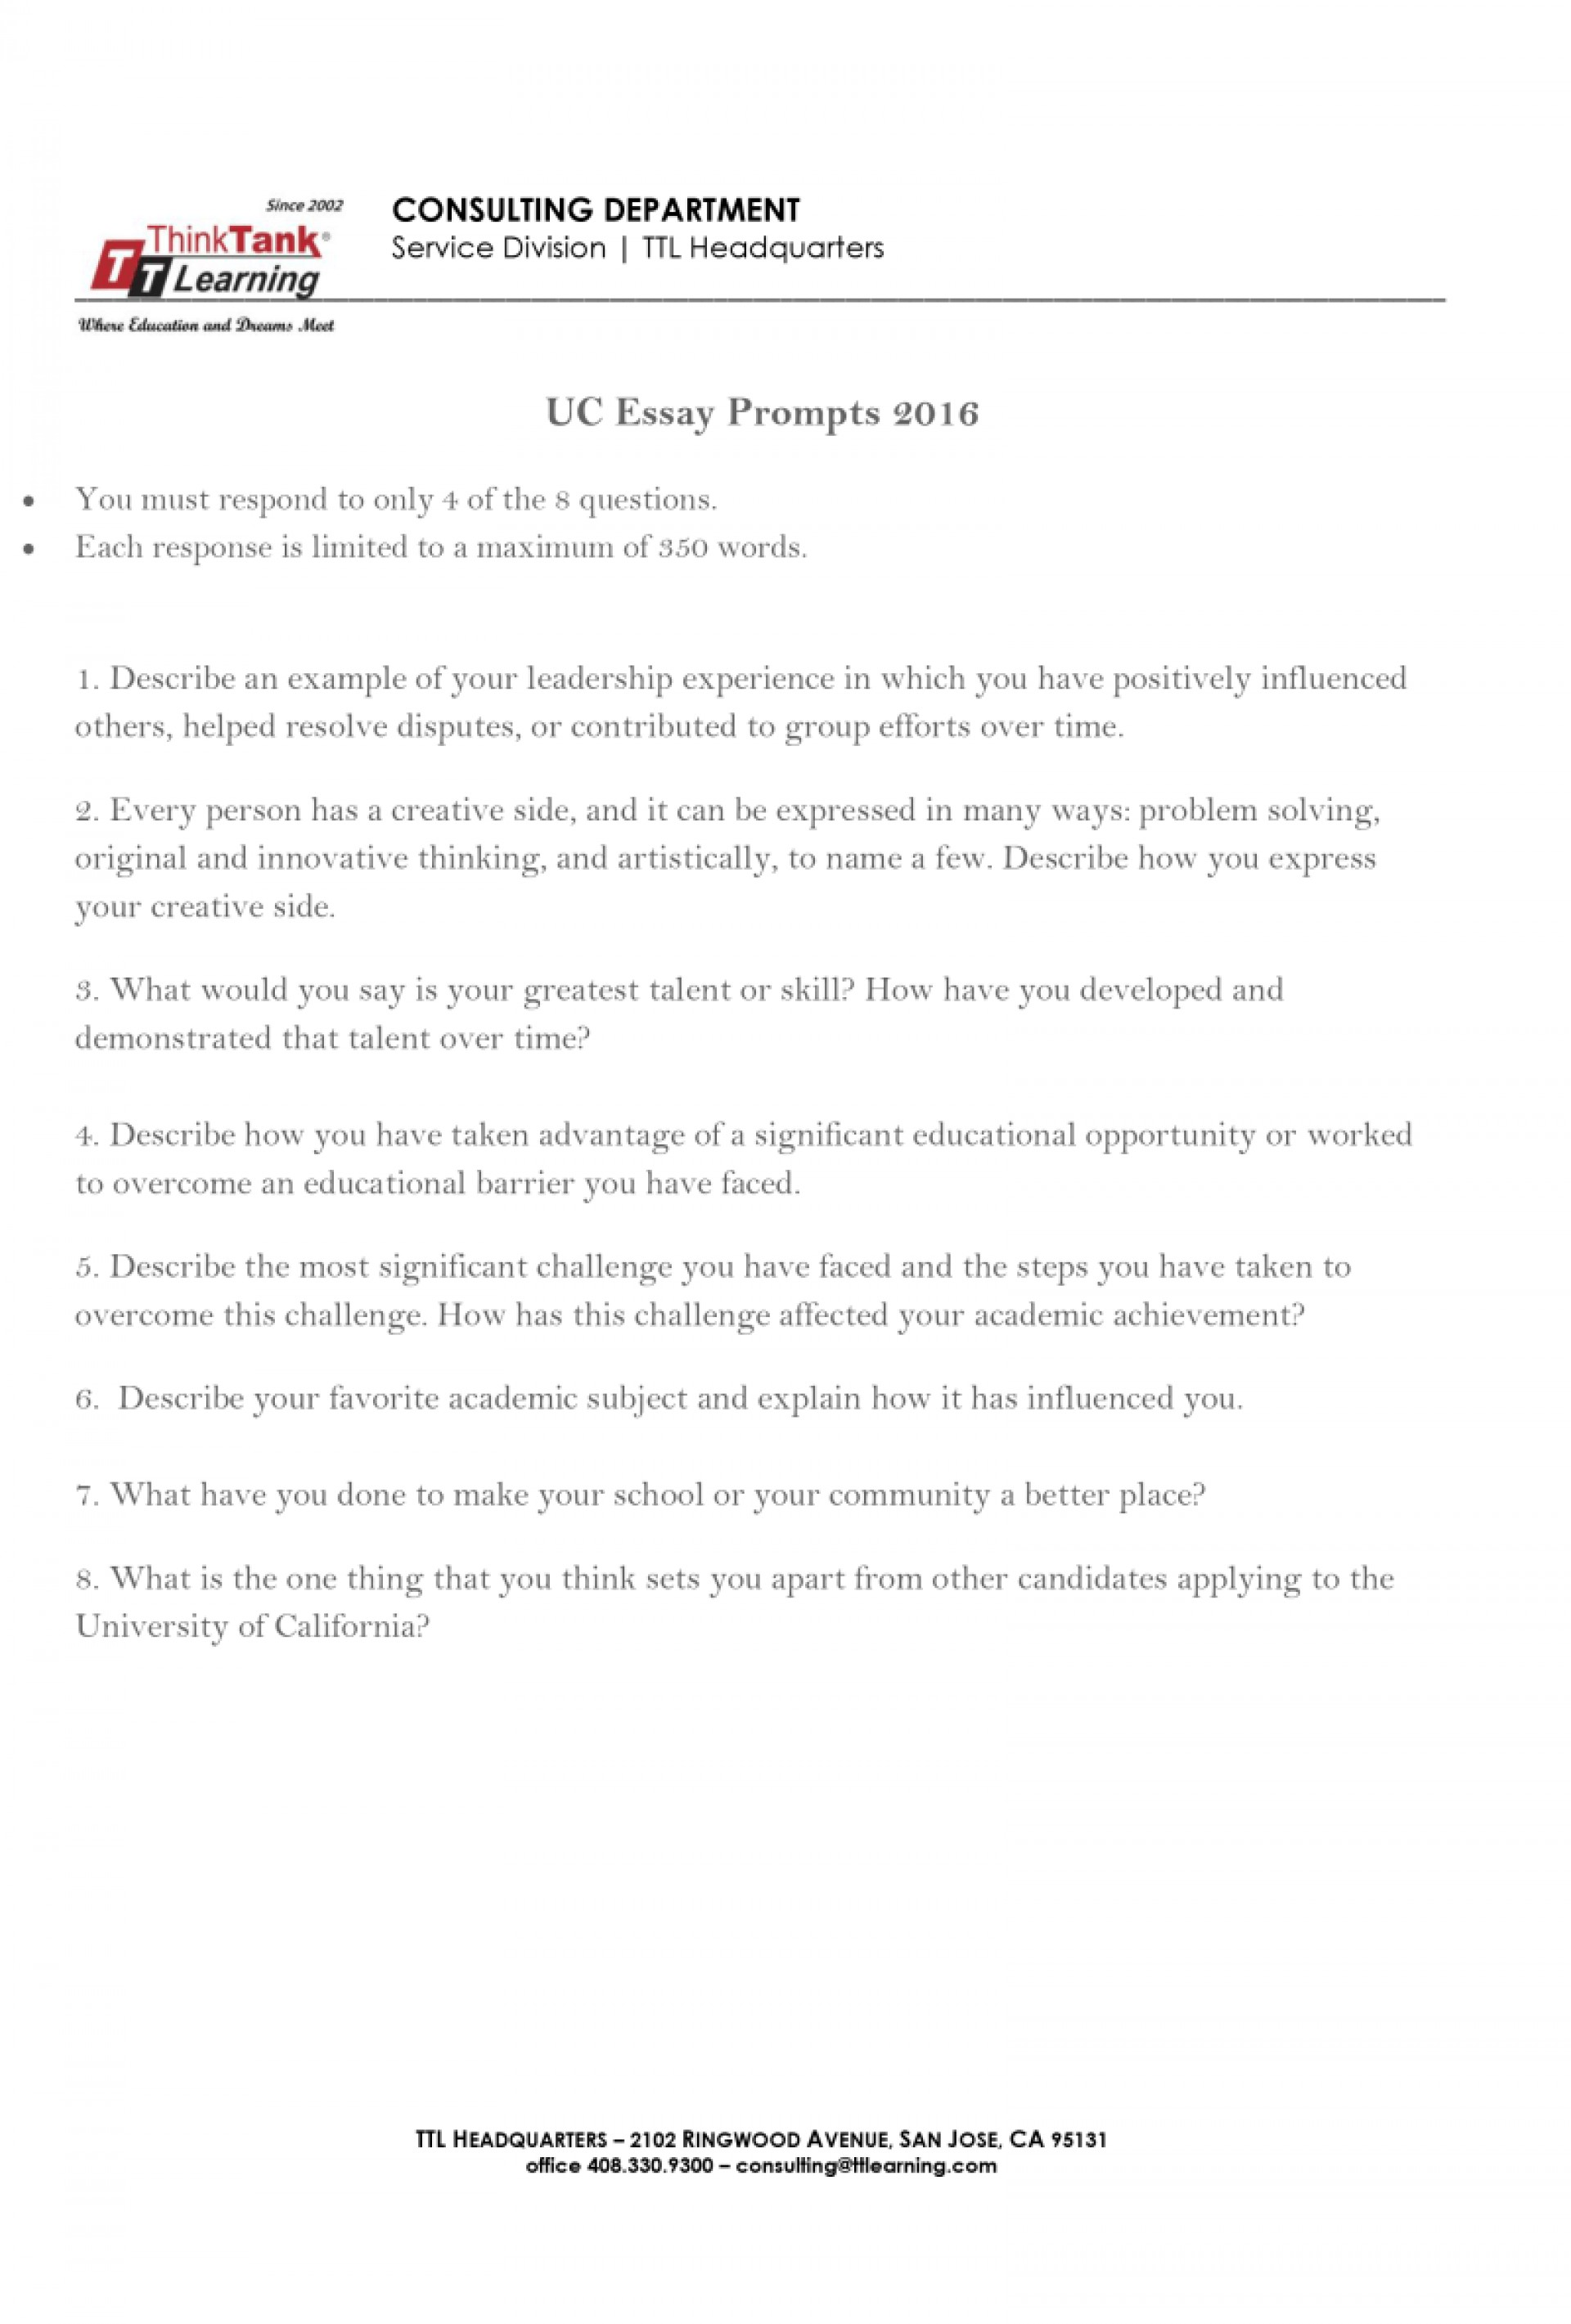 018 Apply Texas Essay Examples Example Prompts Poemsrom Co Uc College App 2 Application Berkeley Unusual Topic A 2016 C 1920